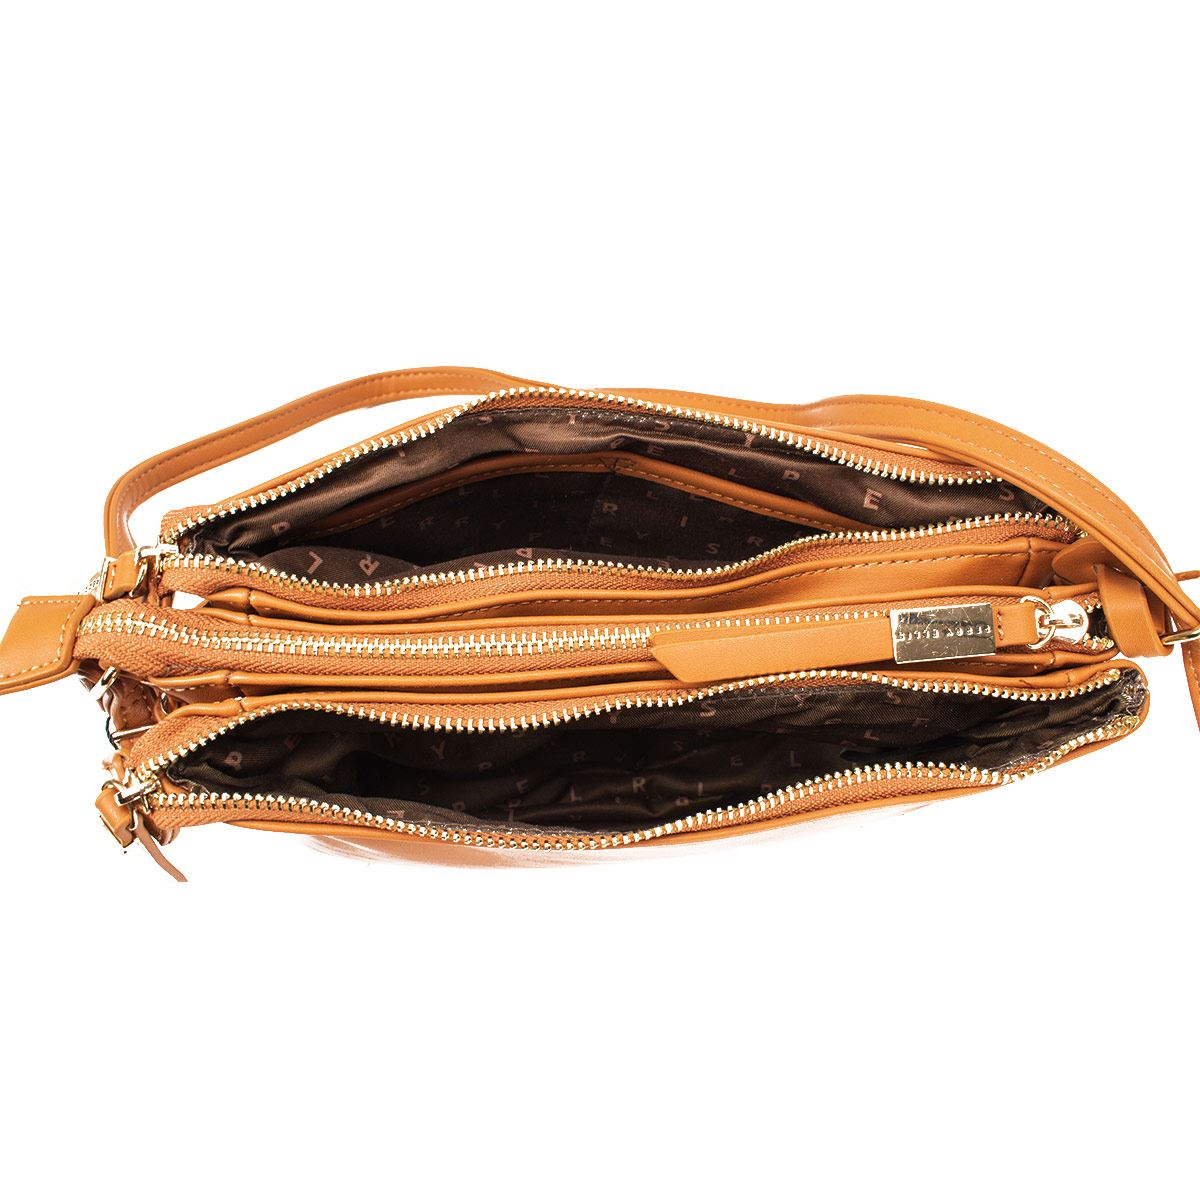 Bolsa Cross Body  Perry Ellis  Camel